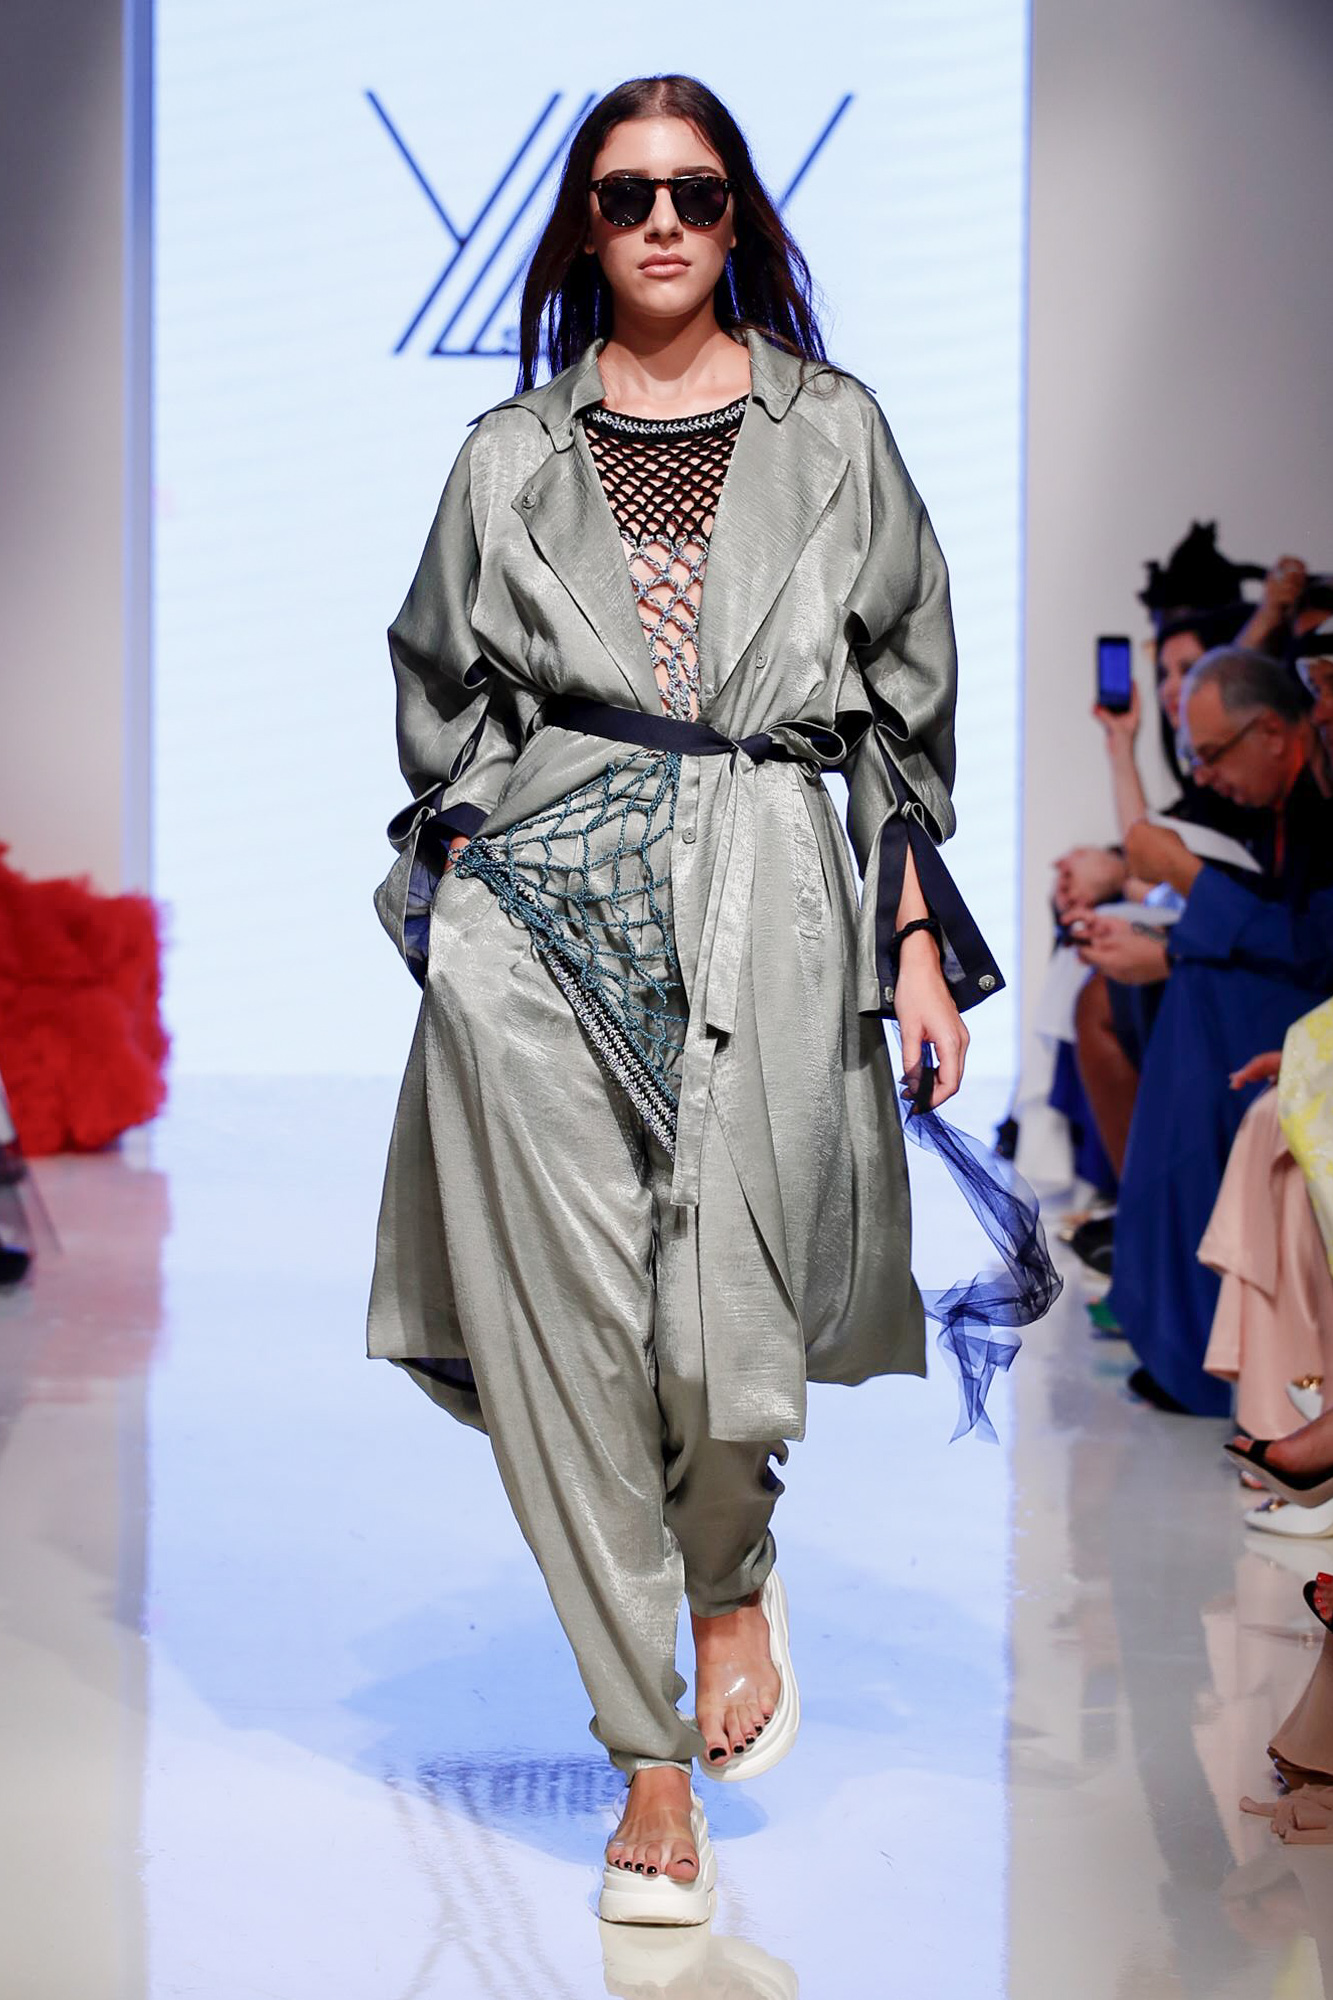 YLY-Studio-Arab-Fashion-Week-SS20-Dubai-5807